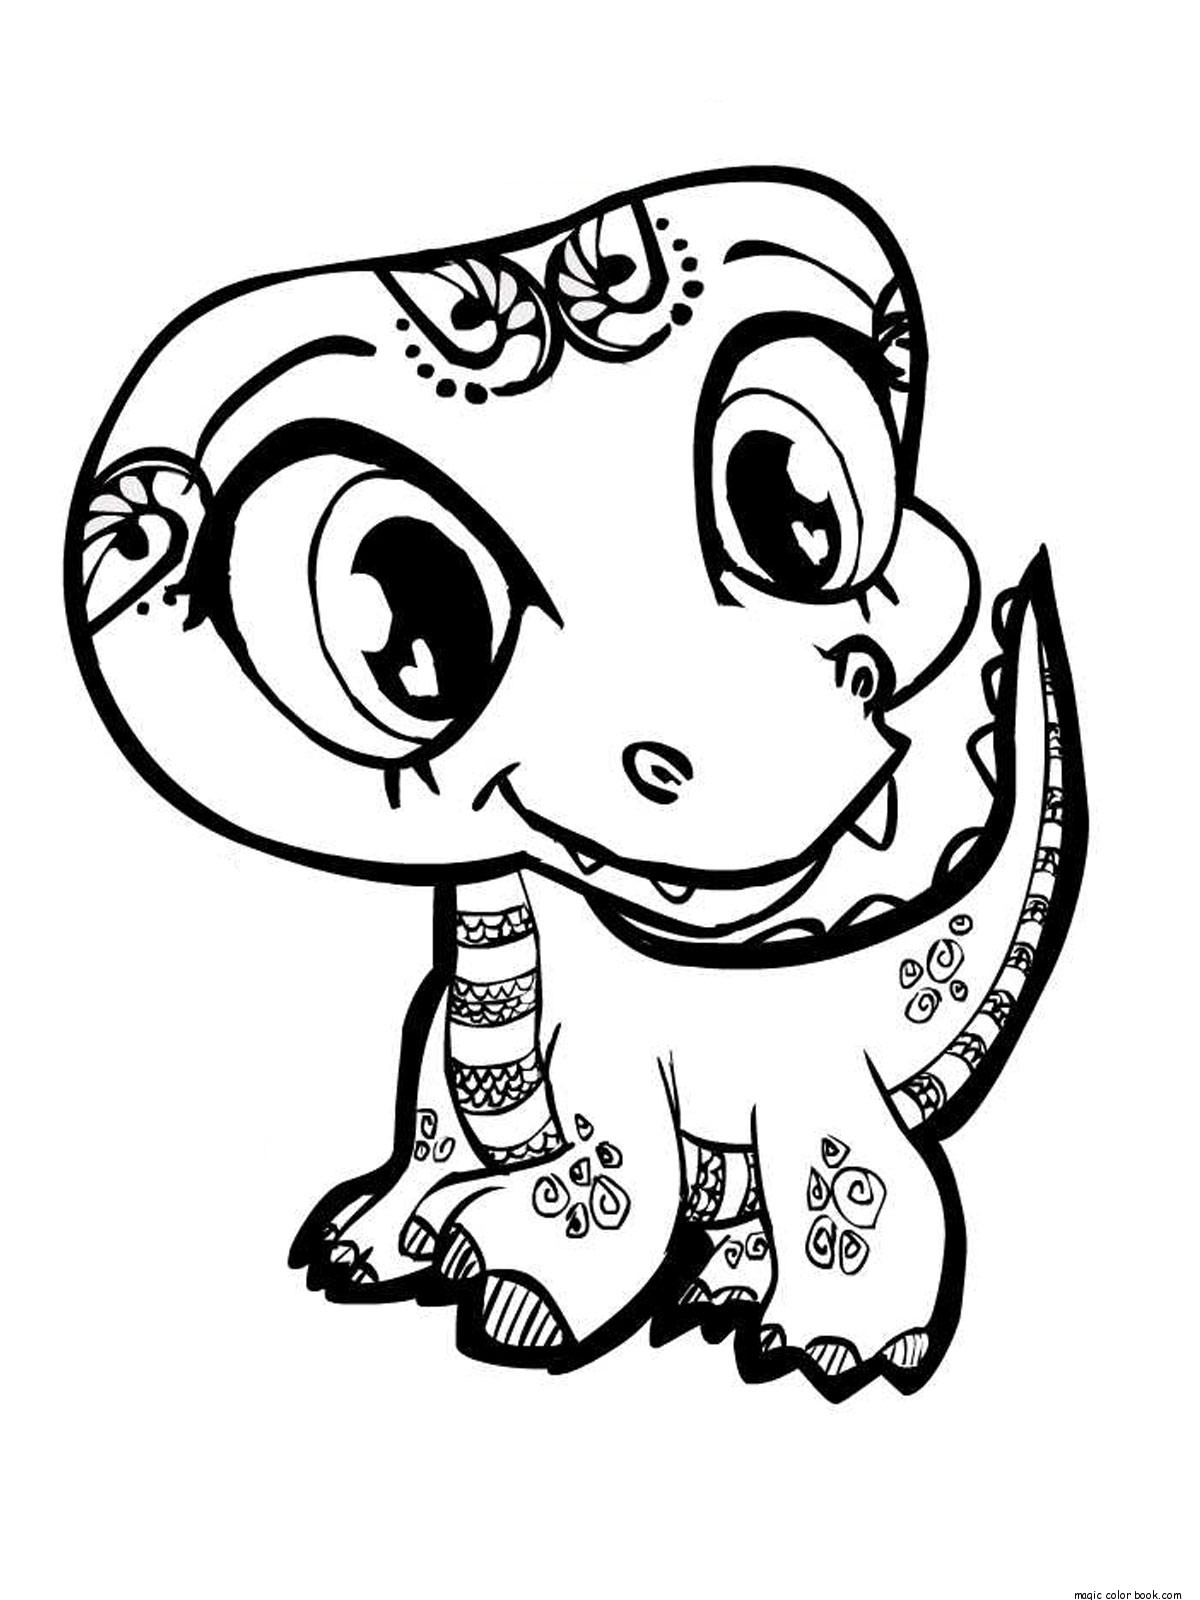 Cute Animal Coloring Pages For Girls  Stylish Cute Animal Coloring Pages For Girls At Out Animal